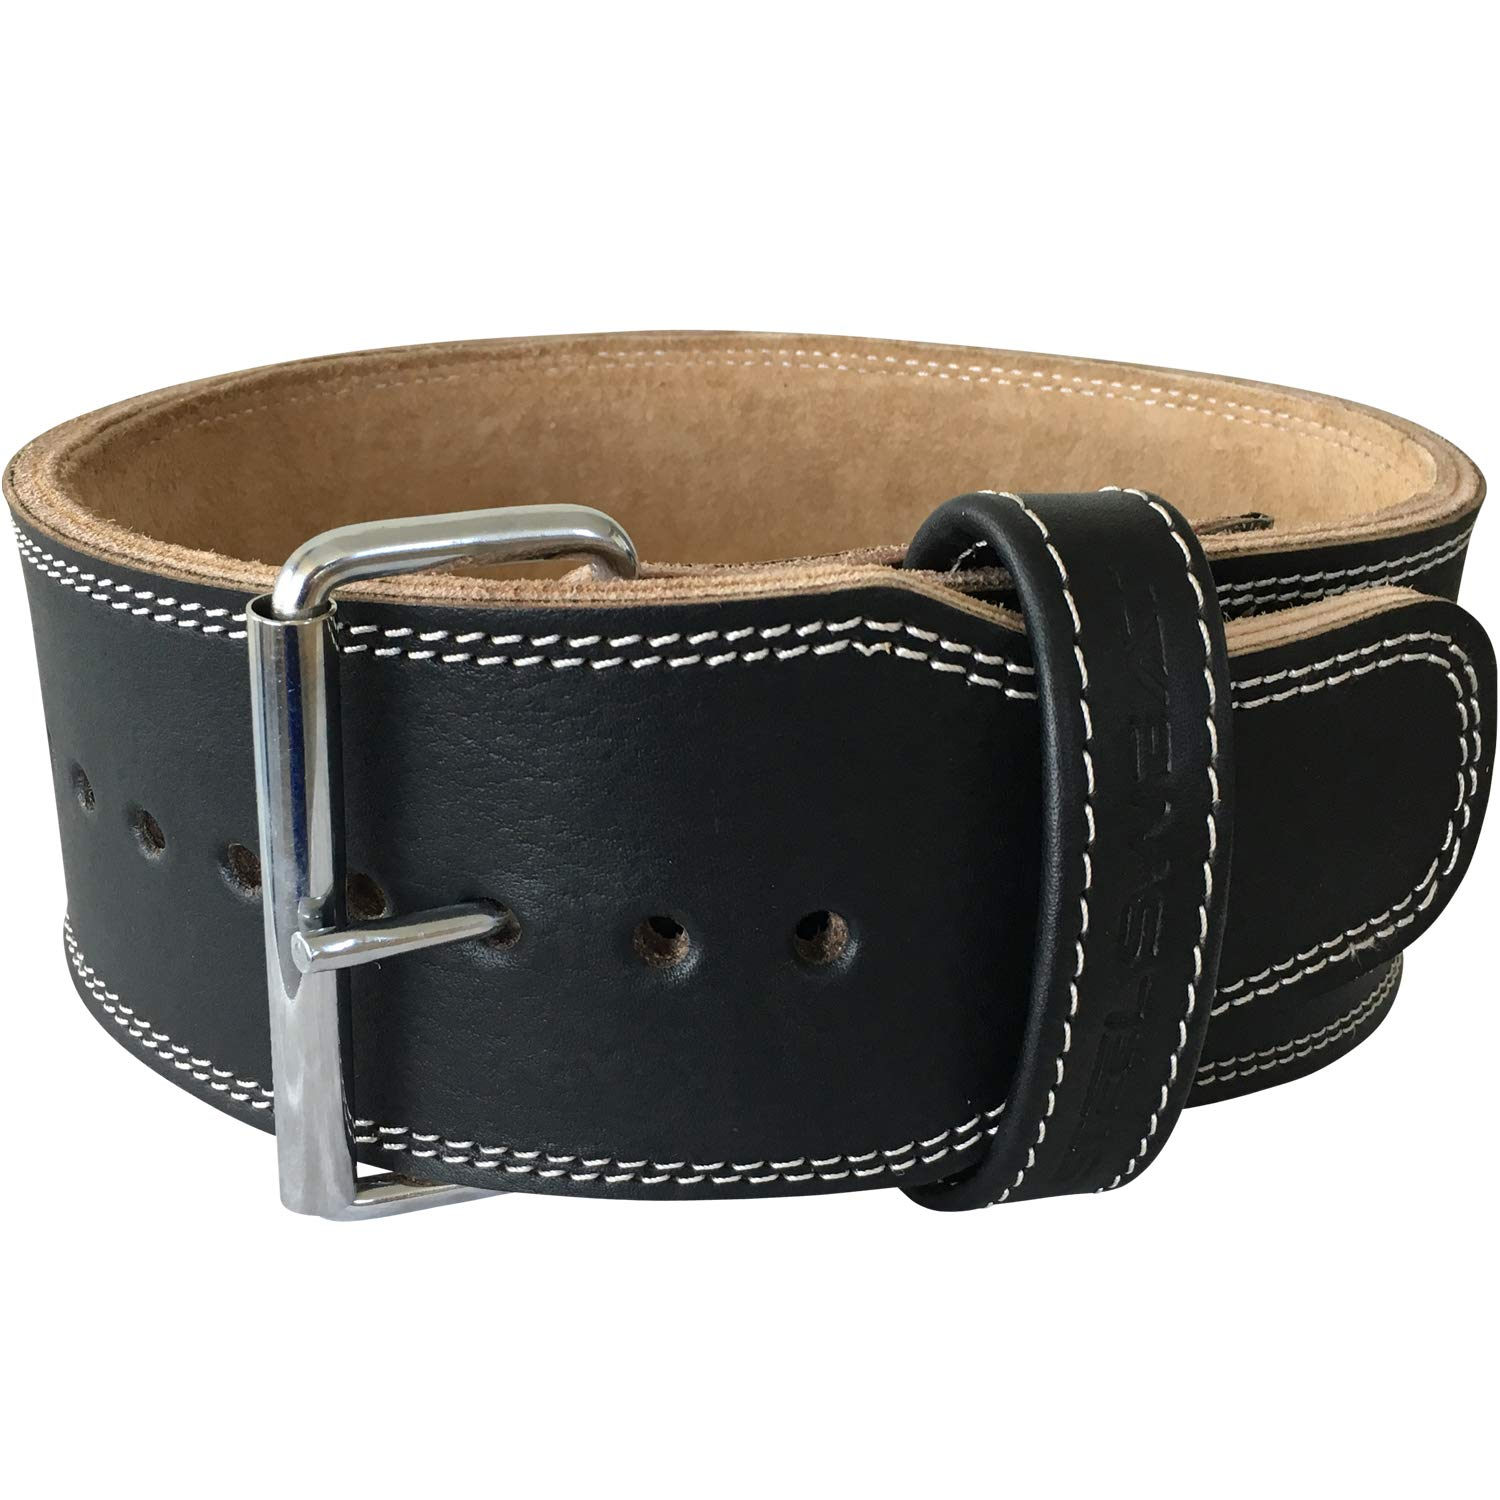 Steel Sweat Weight Lifting Belt - 4 Inches Wide by 10mm - Single Prong Powerlifting Belt That's Heavy Duty - Genuine Cowhide Leather - Medium Texus by Steel Sweat (Image #2)